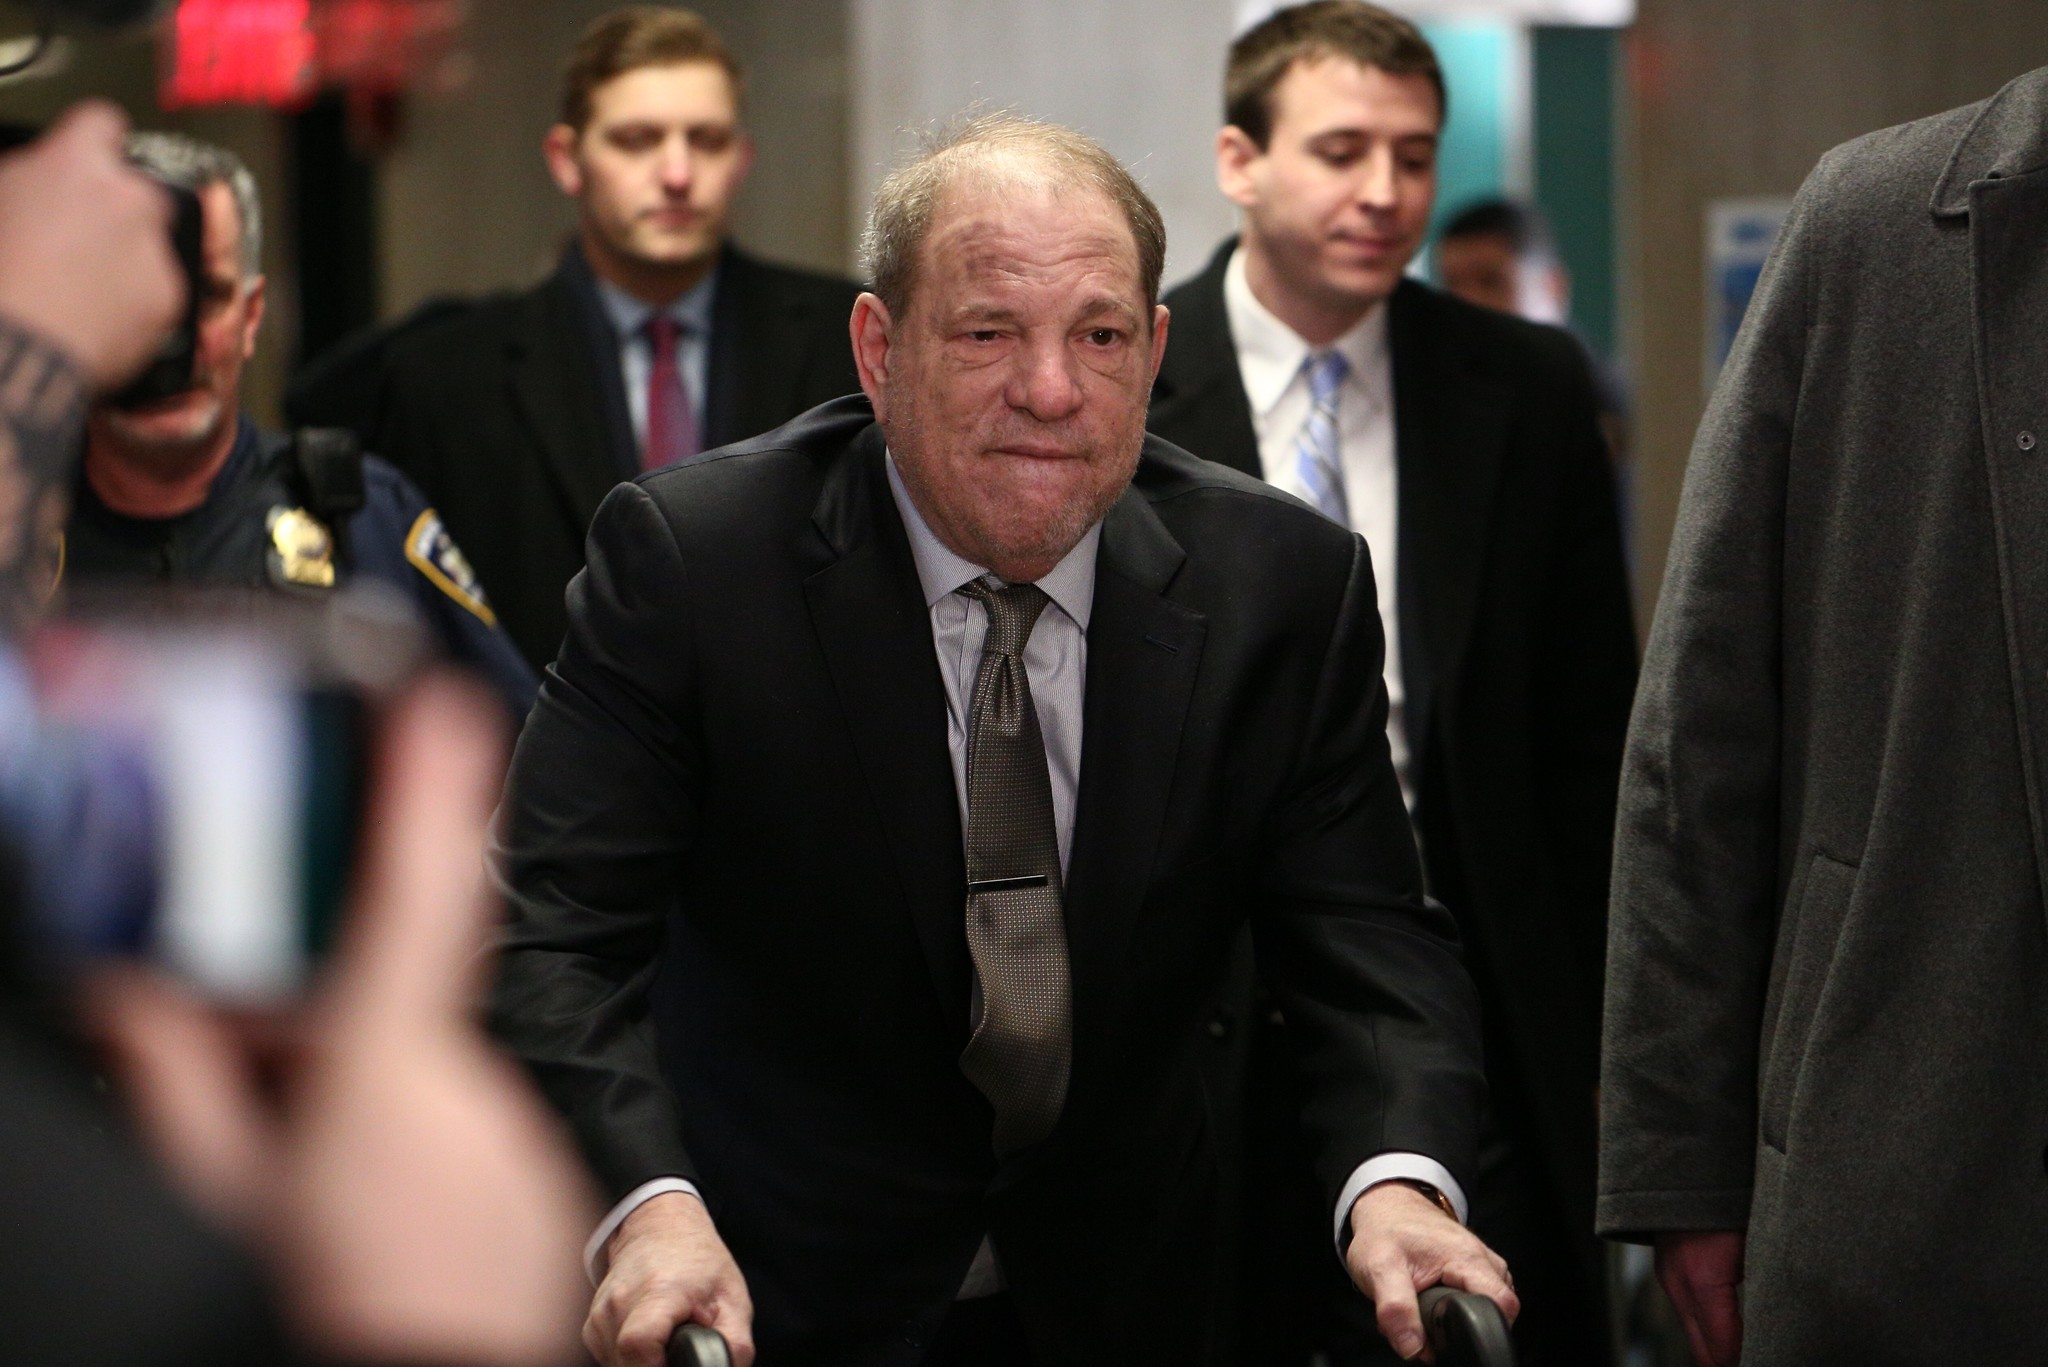 Harvey Weinstein, 8 others quarantined at upstate NY prison due to coronavirus: report